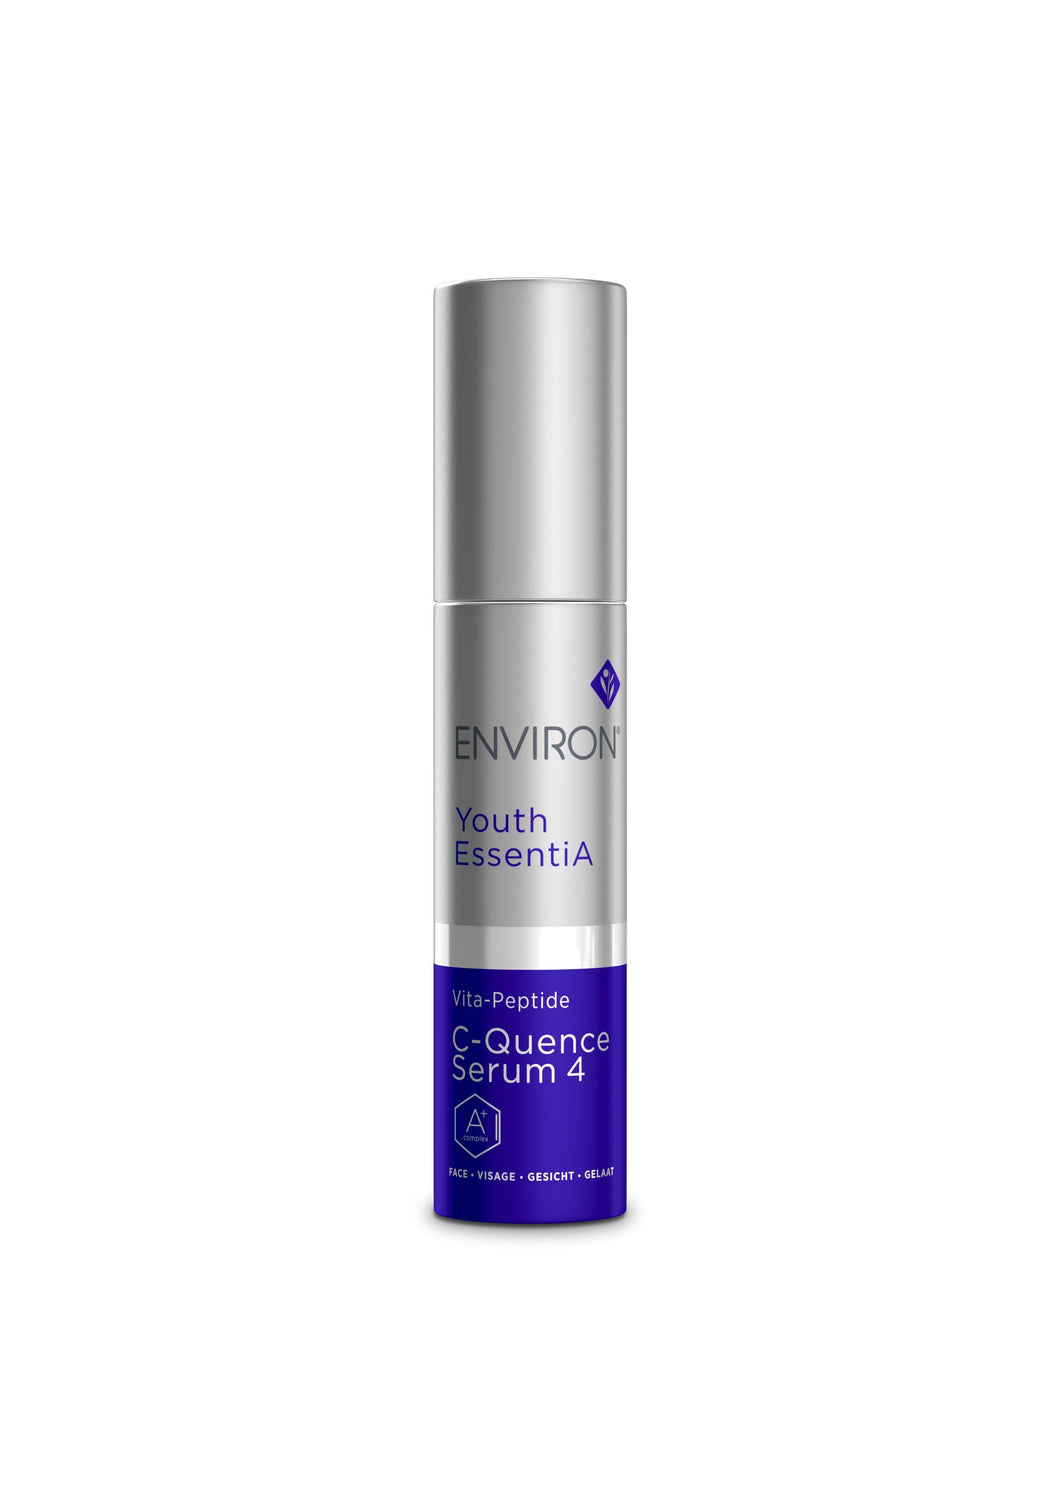 Vita Peptide CQ Serum 4 35ml